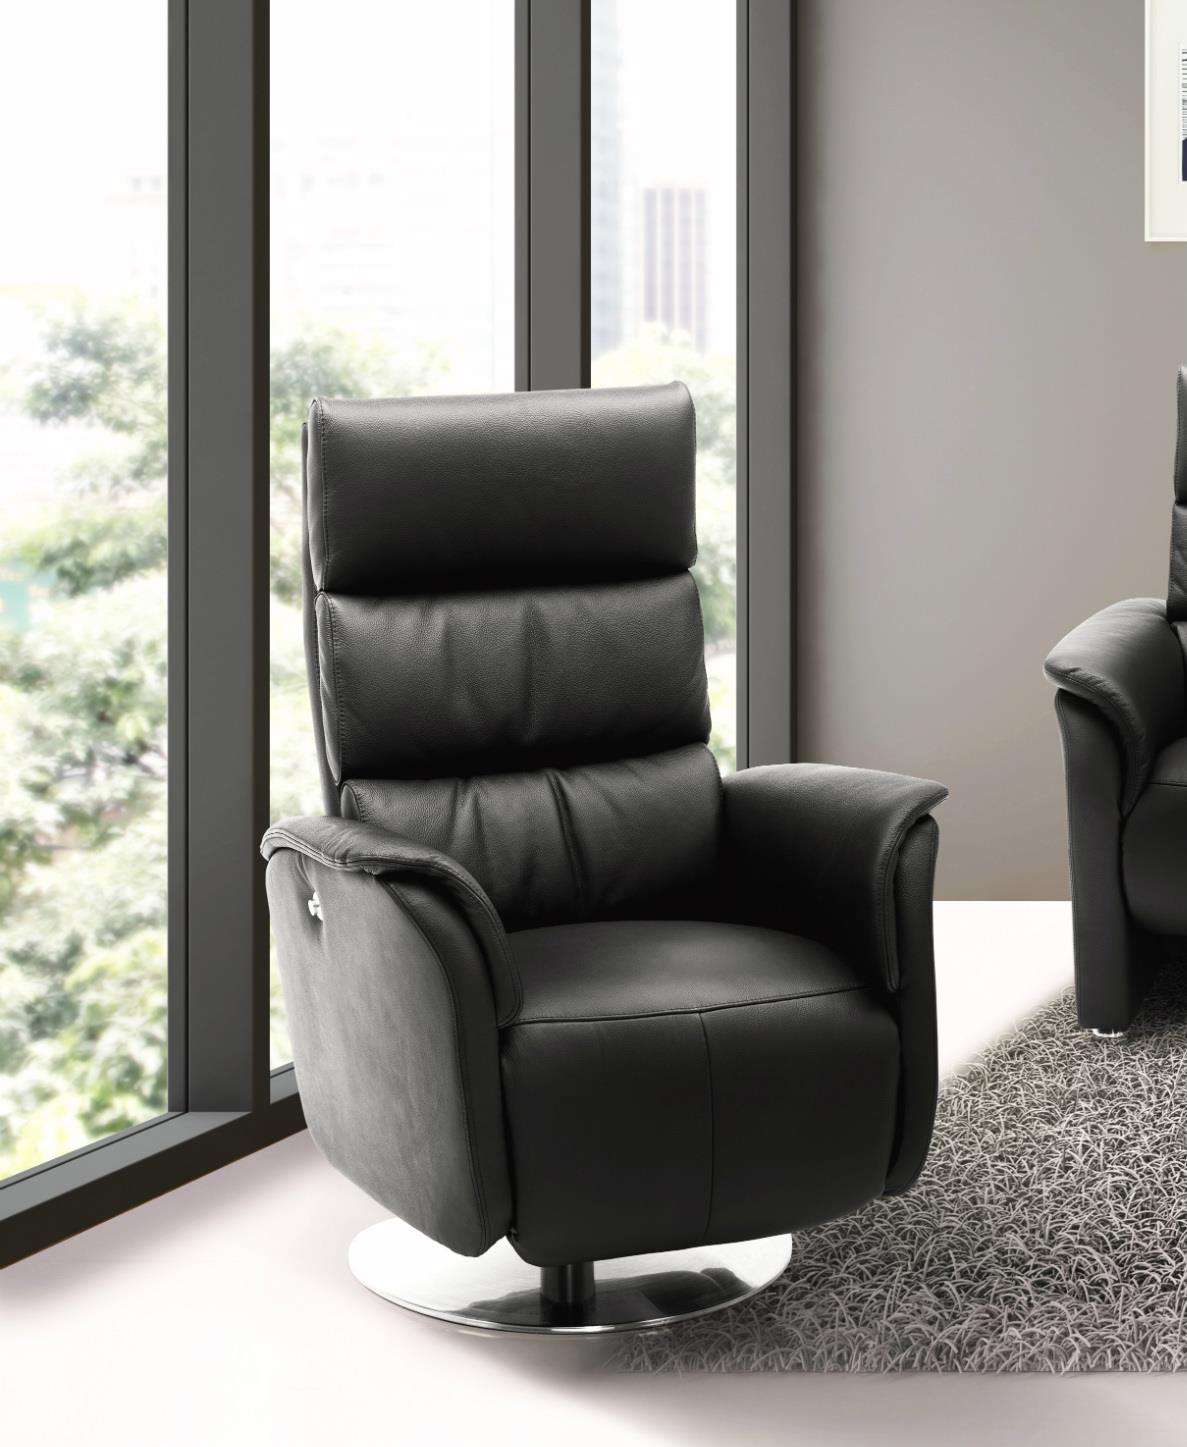 JUTLAND Leather Swivel Chair